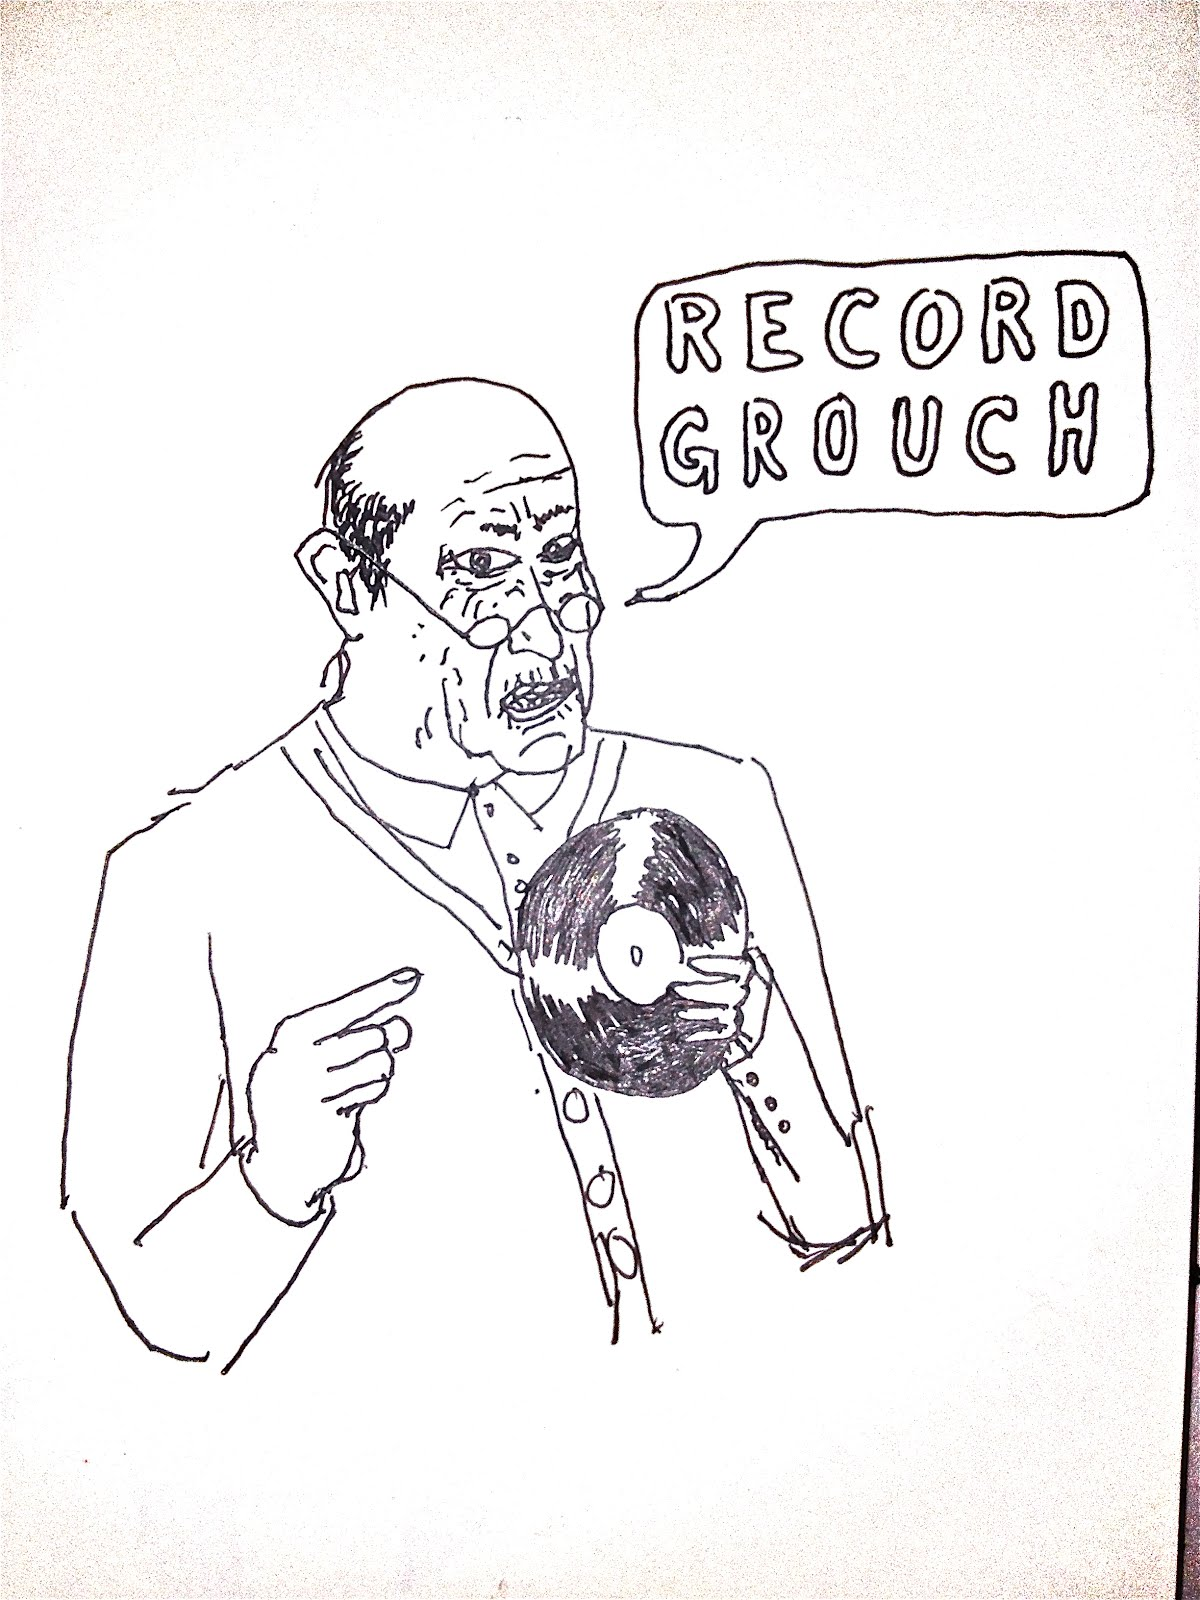 RECORD GROUCH